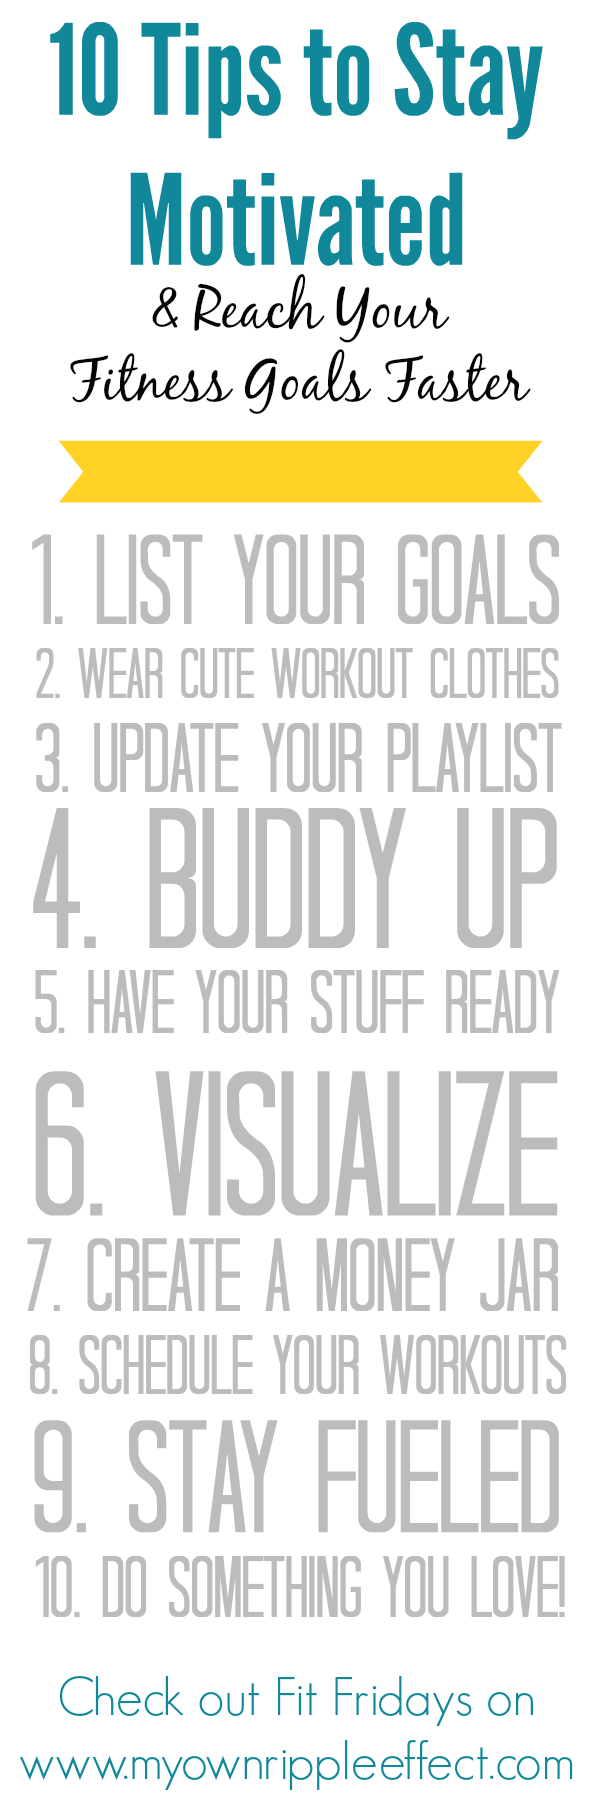 Fit Friday 10 Tips to Stay Motivated 2